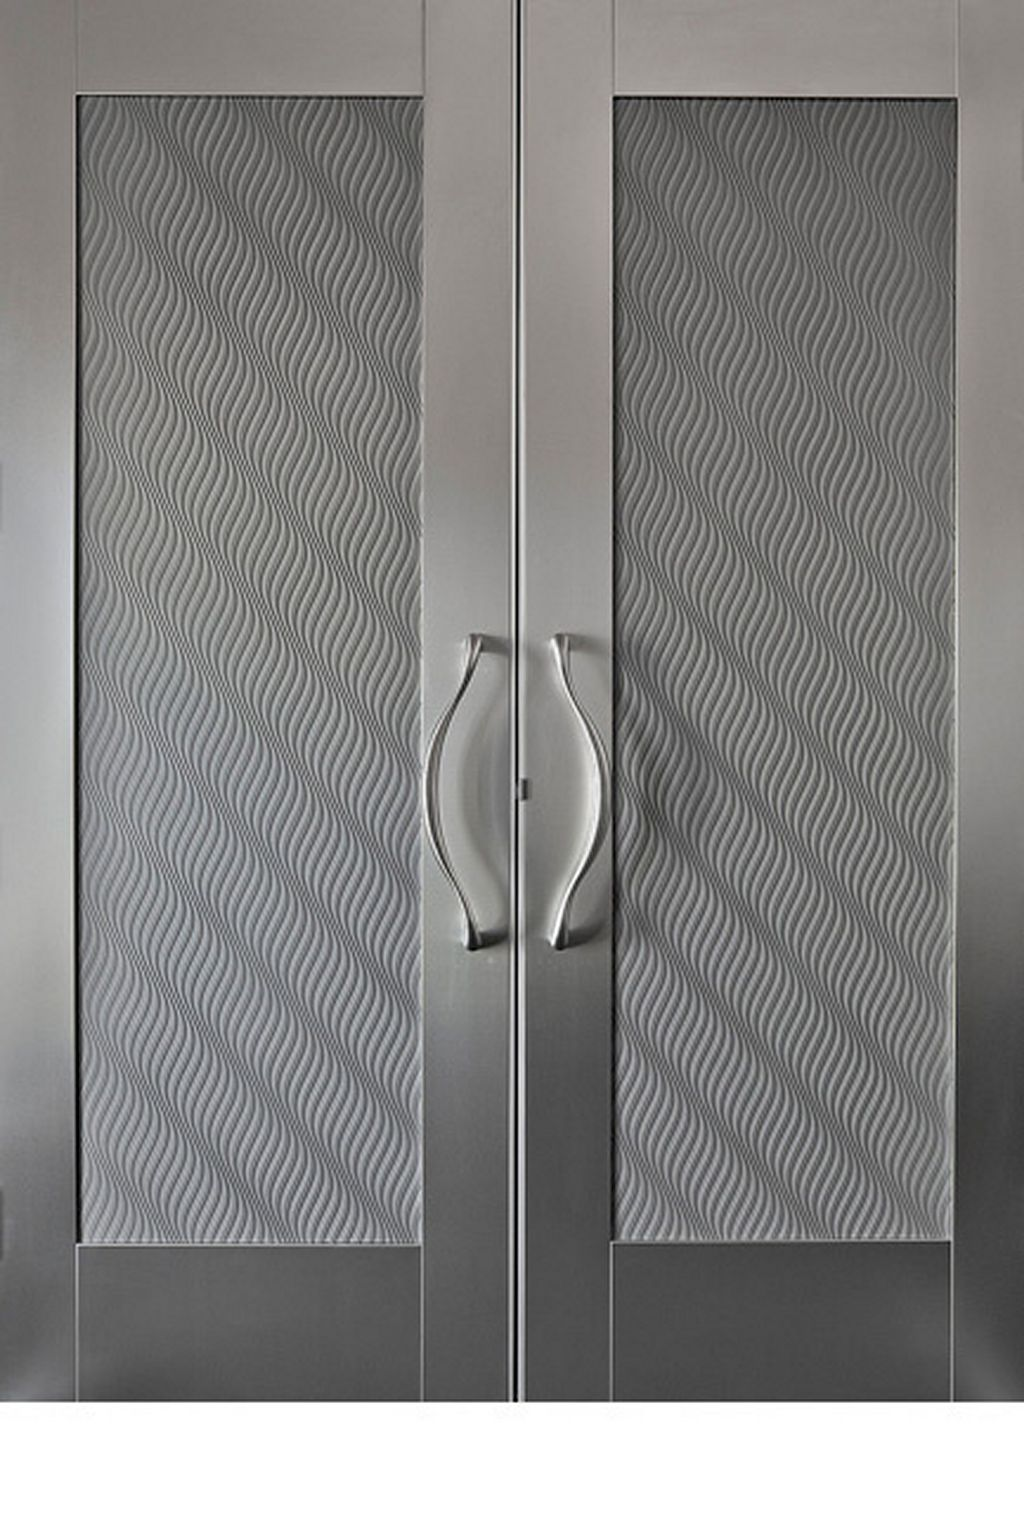 The Best Mattress >> Door-pulls-modern-minimalist-stainless-steel-door-system-design